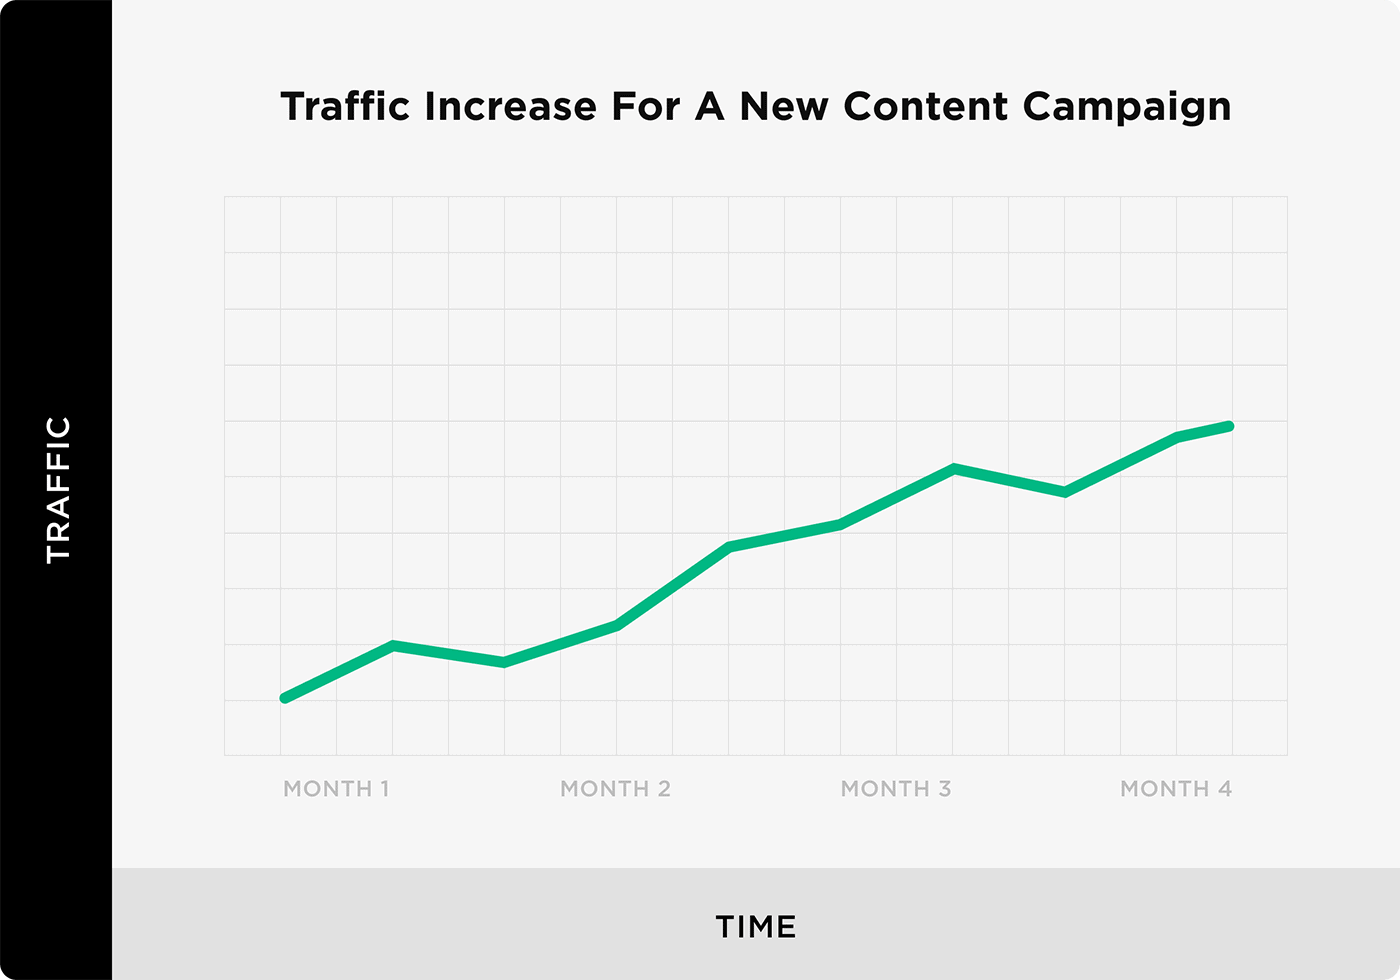 Traffic increase for a new content campaign